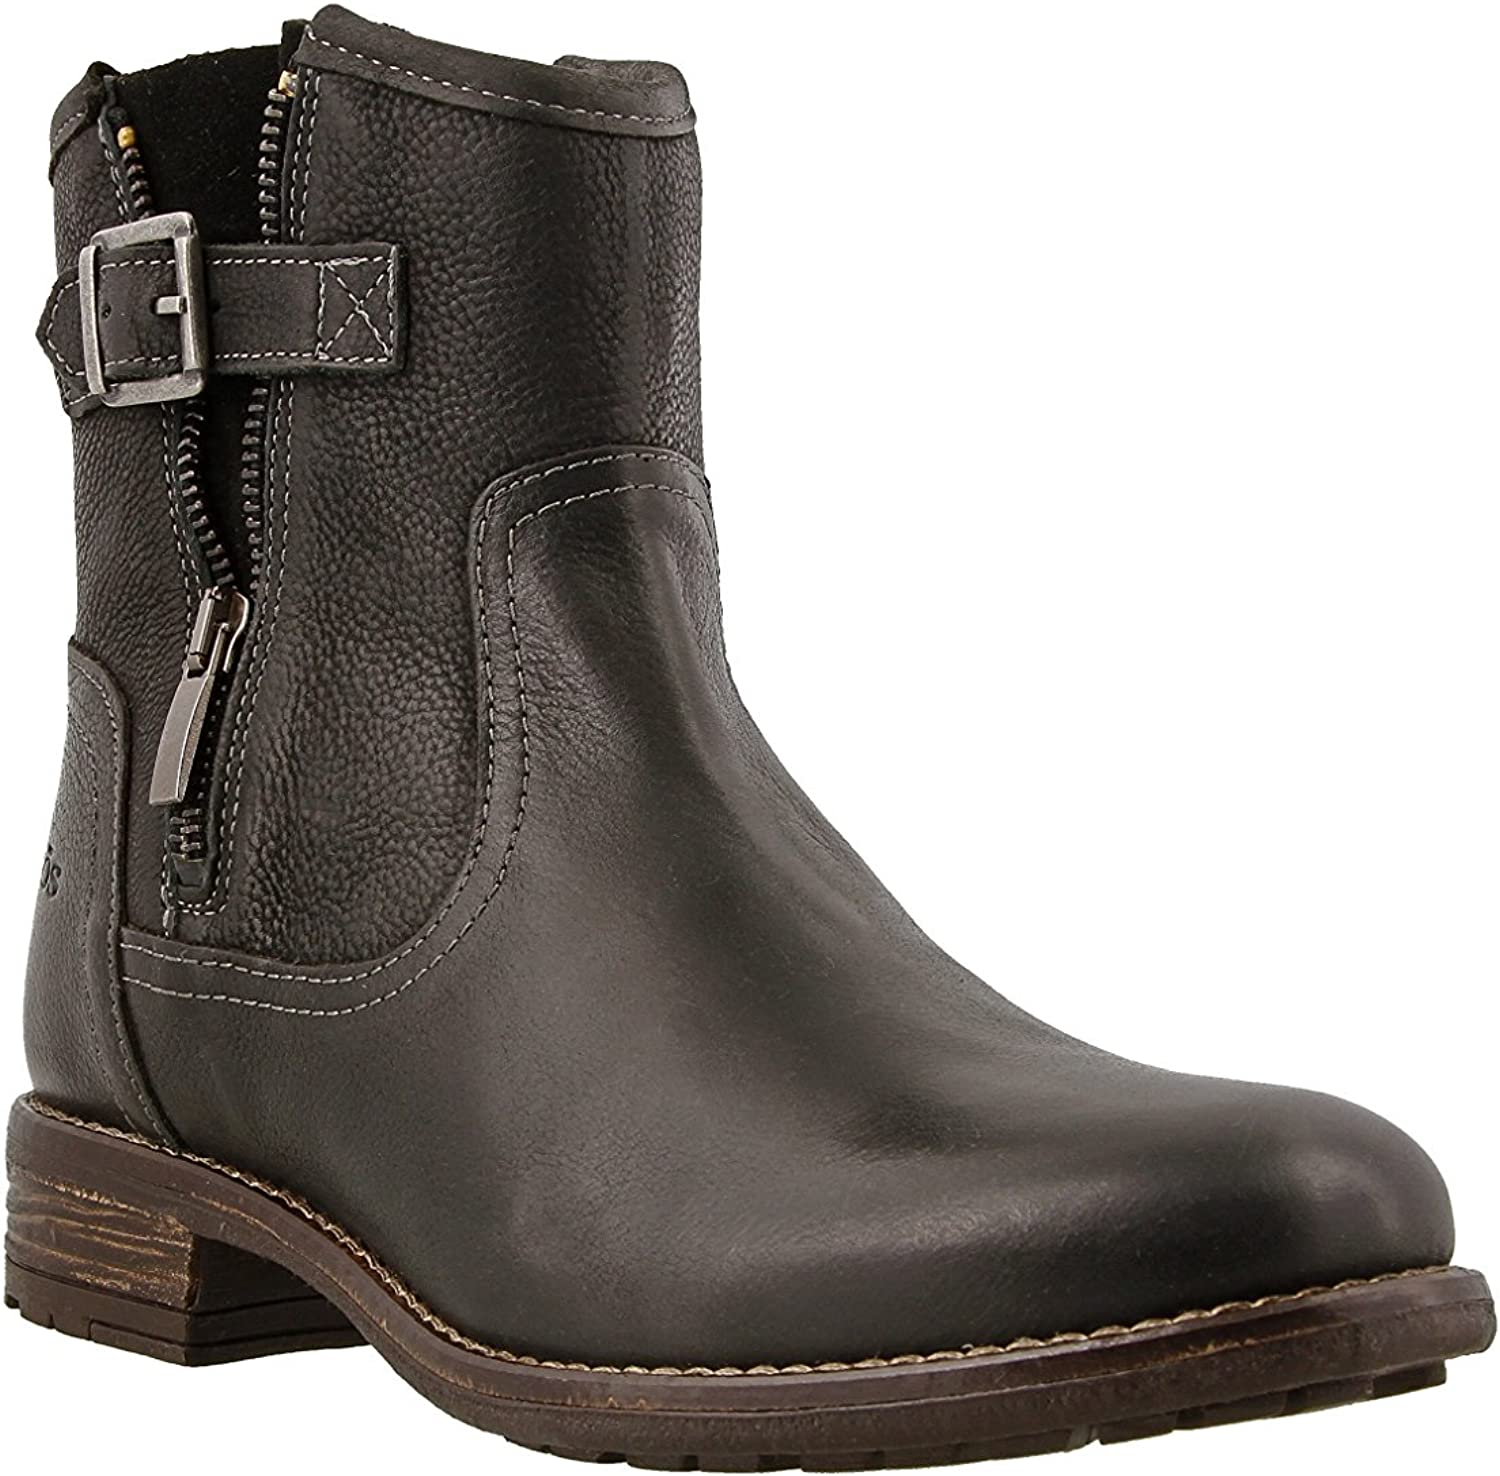 Taos Footwear Women's Convoy Leather Boot